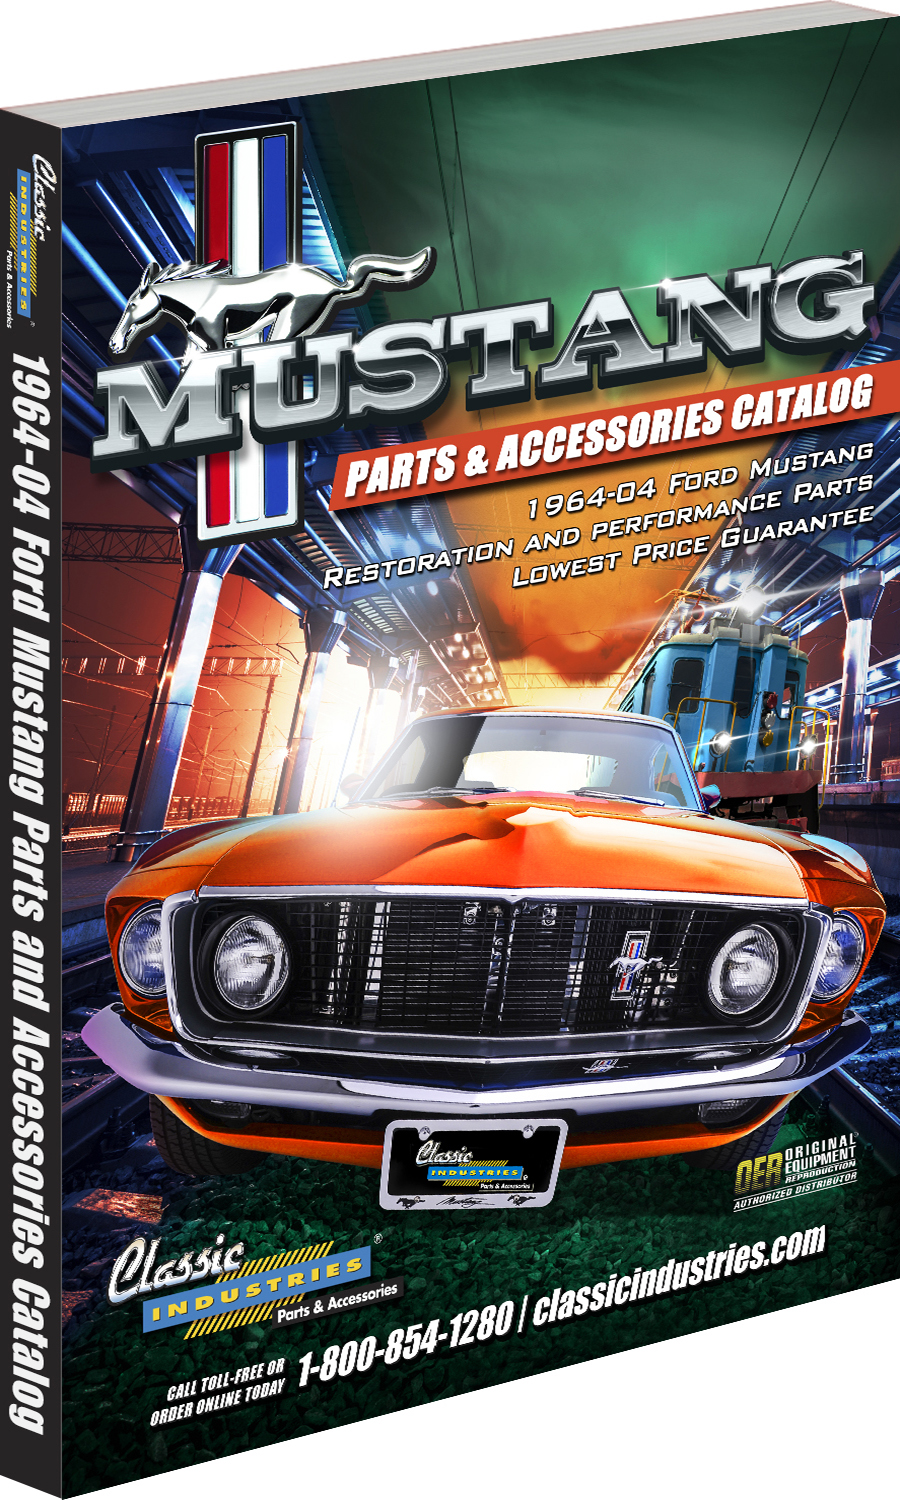 Happy holidays for owners of classic Ford Mustangs